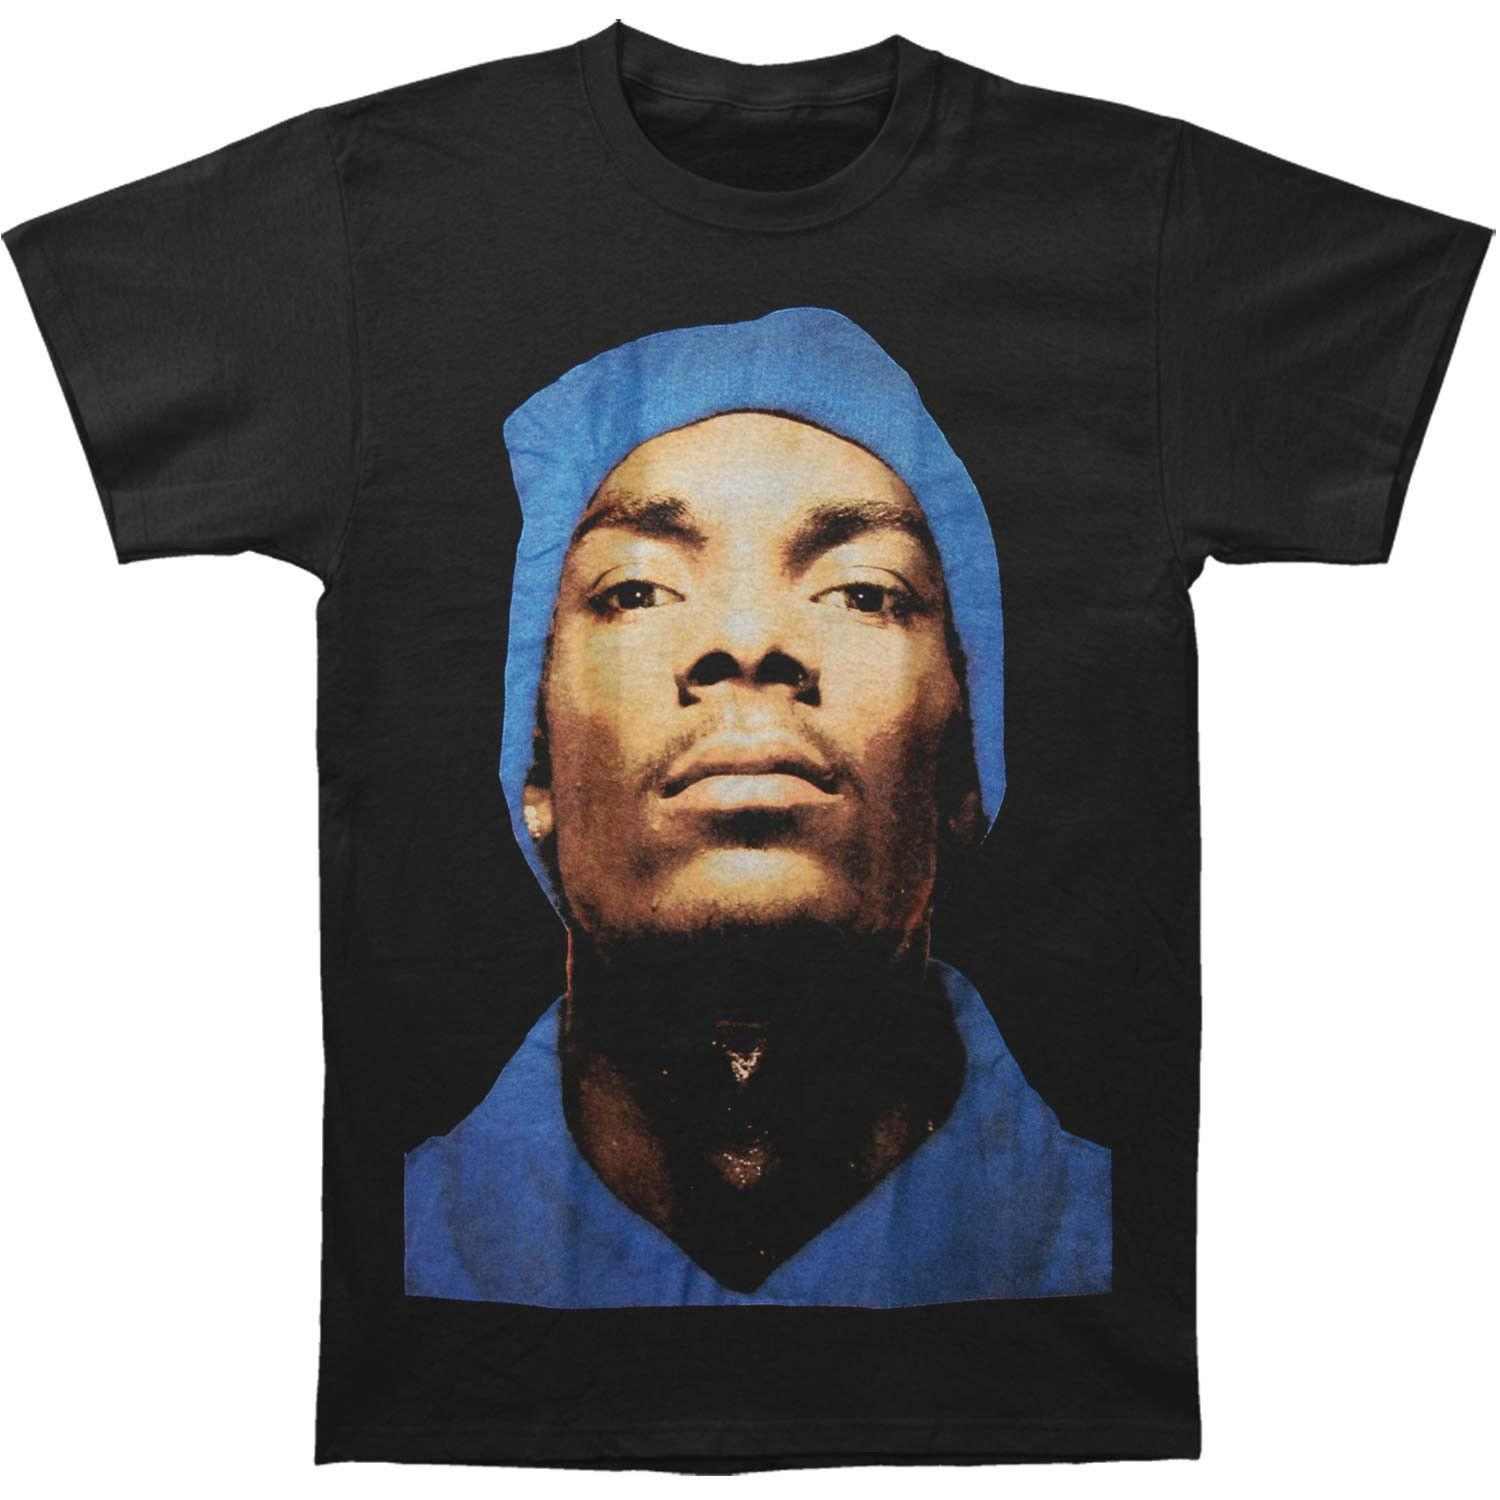 Official Snoop Dogg - Beanie Profile - Men's Black T-Shirt US IMPORT Cheap  wholesale tees Fashion Style Men Tee Gift Print T-shirt